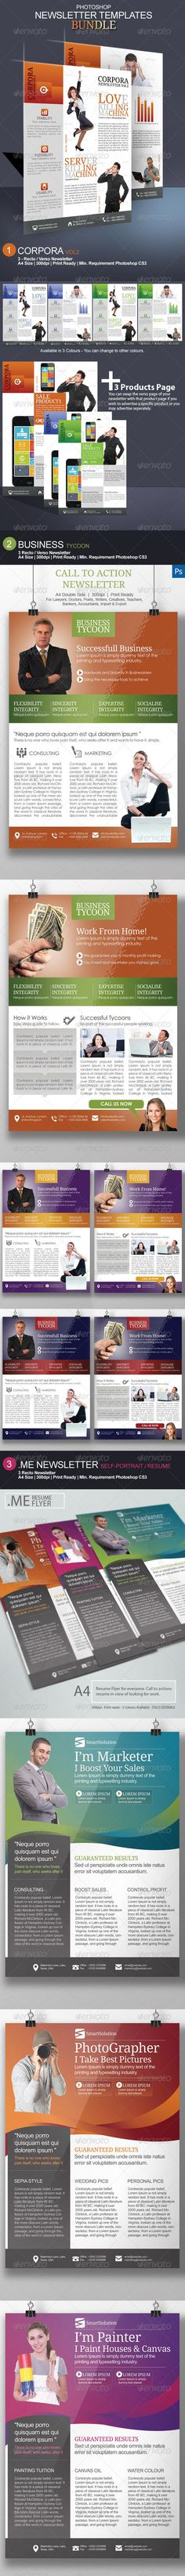 Newsletter Photoshop Templates - #Newsletters Print #Templates Download here: https://graphicriver.net/item/newsletter-photoshop-templates/8248425?ref=alena994